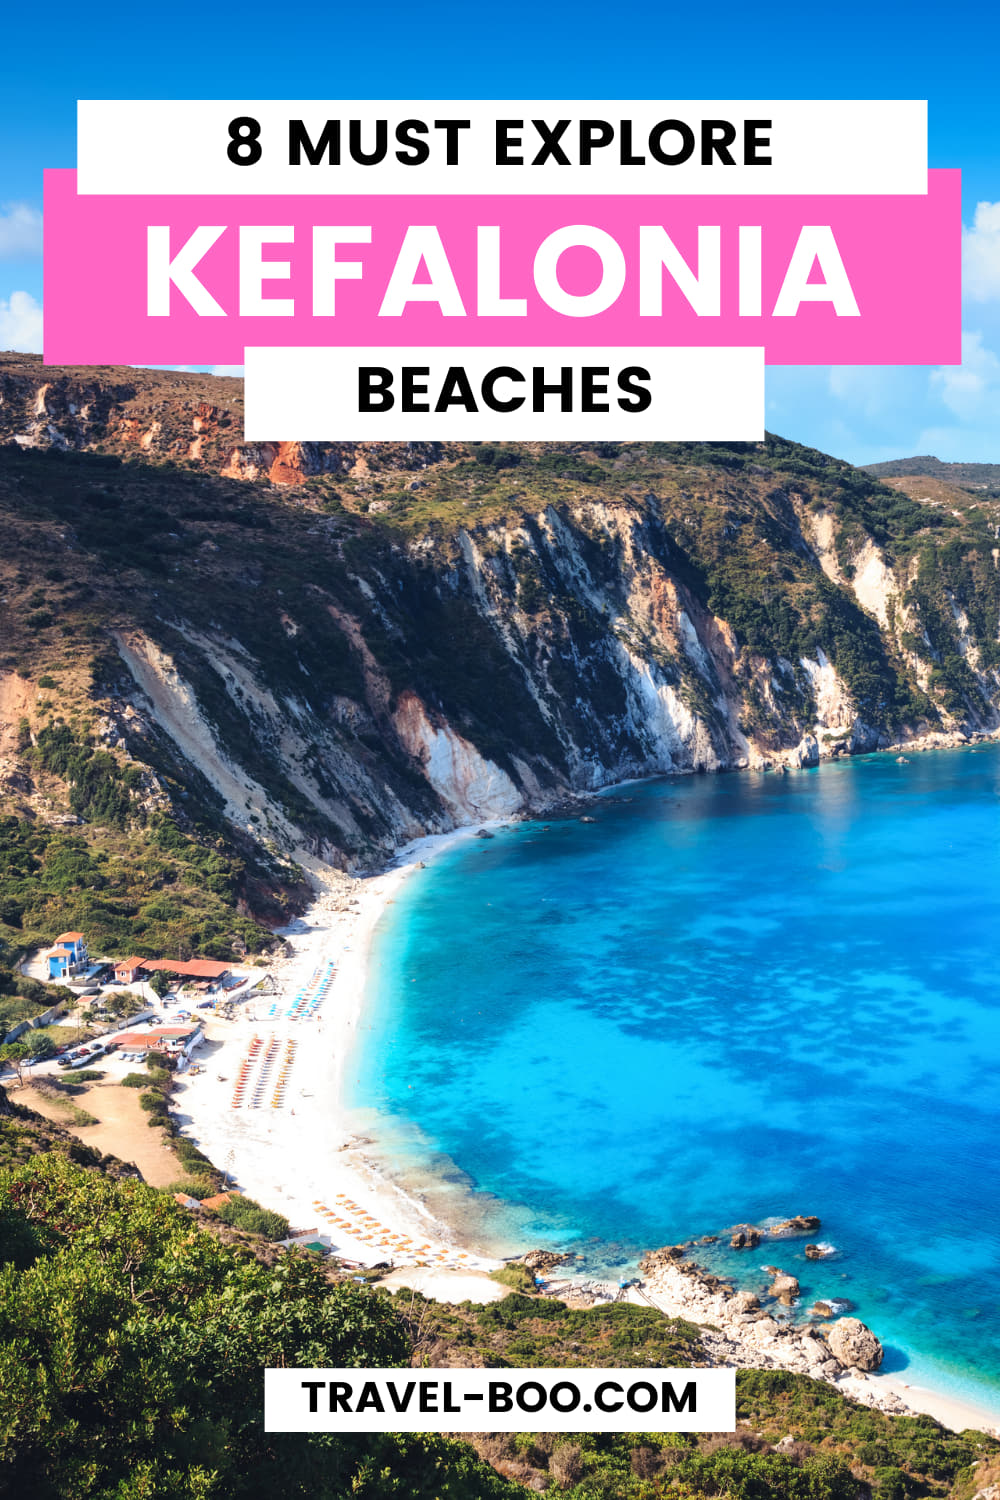 The 8 Best Beaches in Kefalonia, Greece Worth Exploring! Kefalonia Greece, Kefalonia Beaches, Greece Travel Islands, Kefalonia Travel Guide, Kefalonia Itinerary, Greece Travel Vacations.